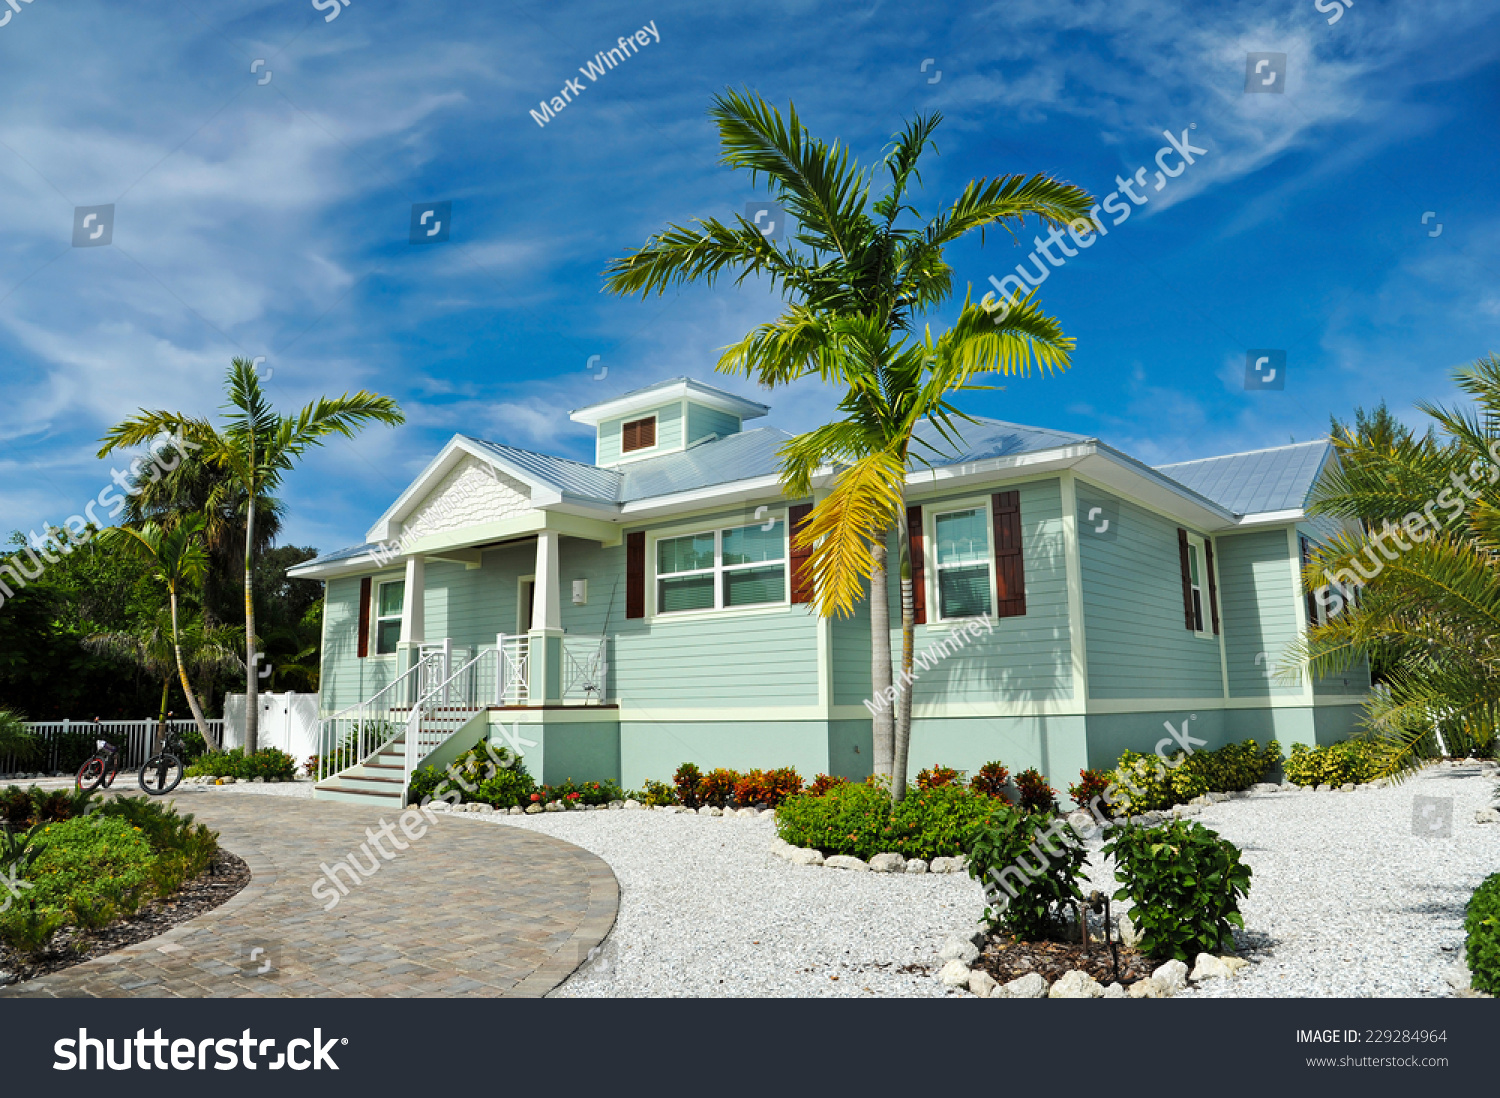 stock-photo-new-beach-house-with-beautif